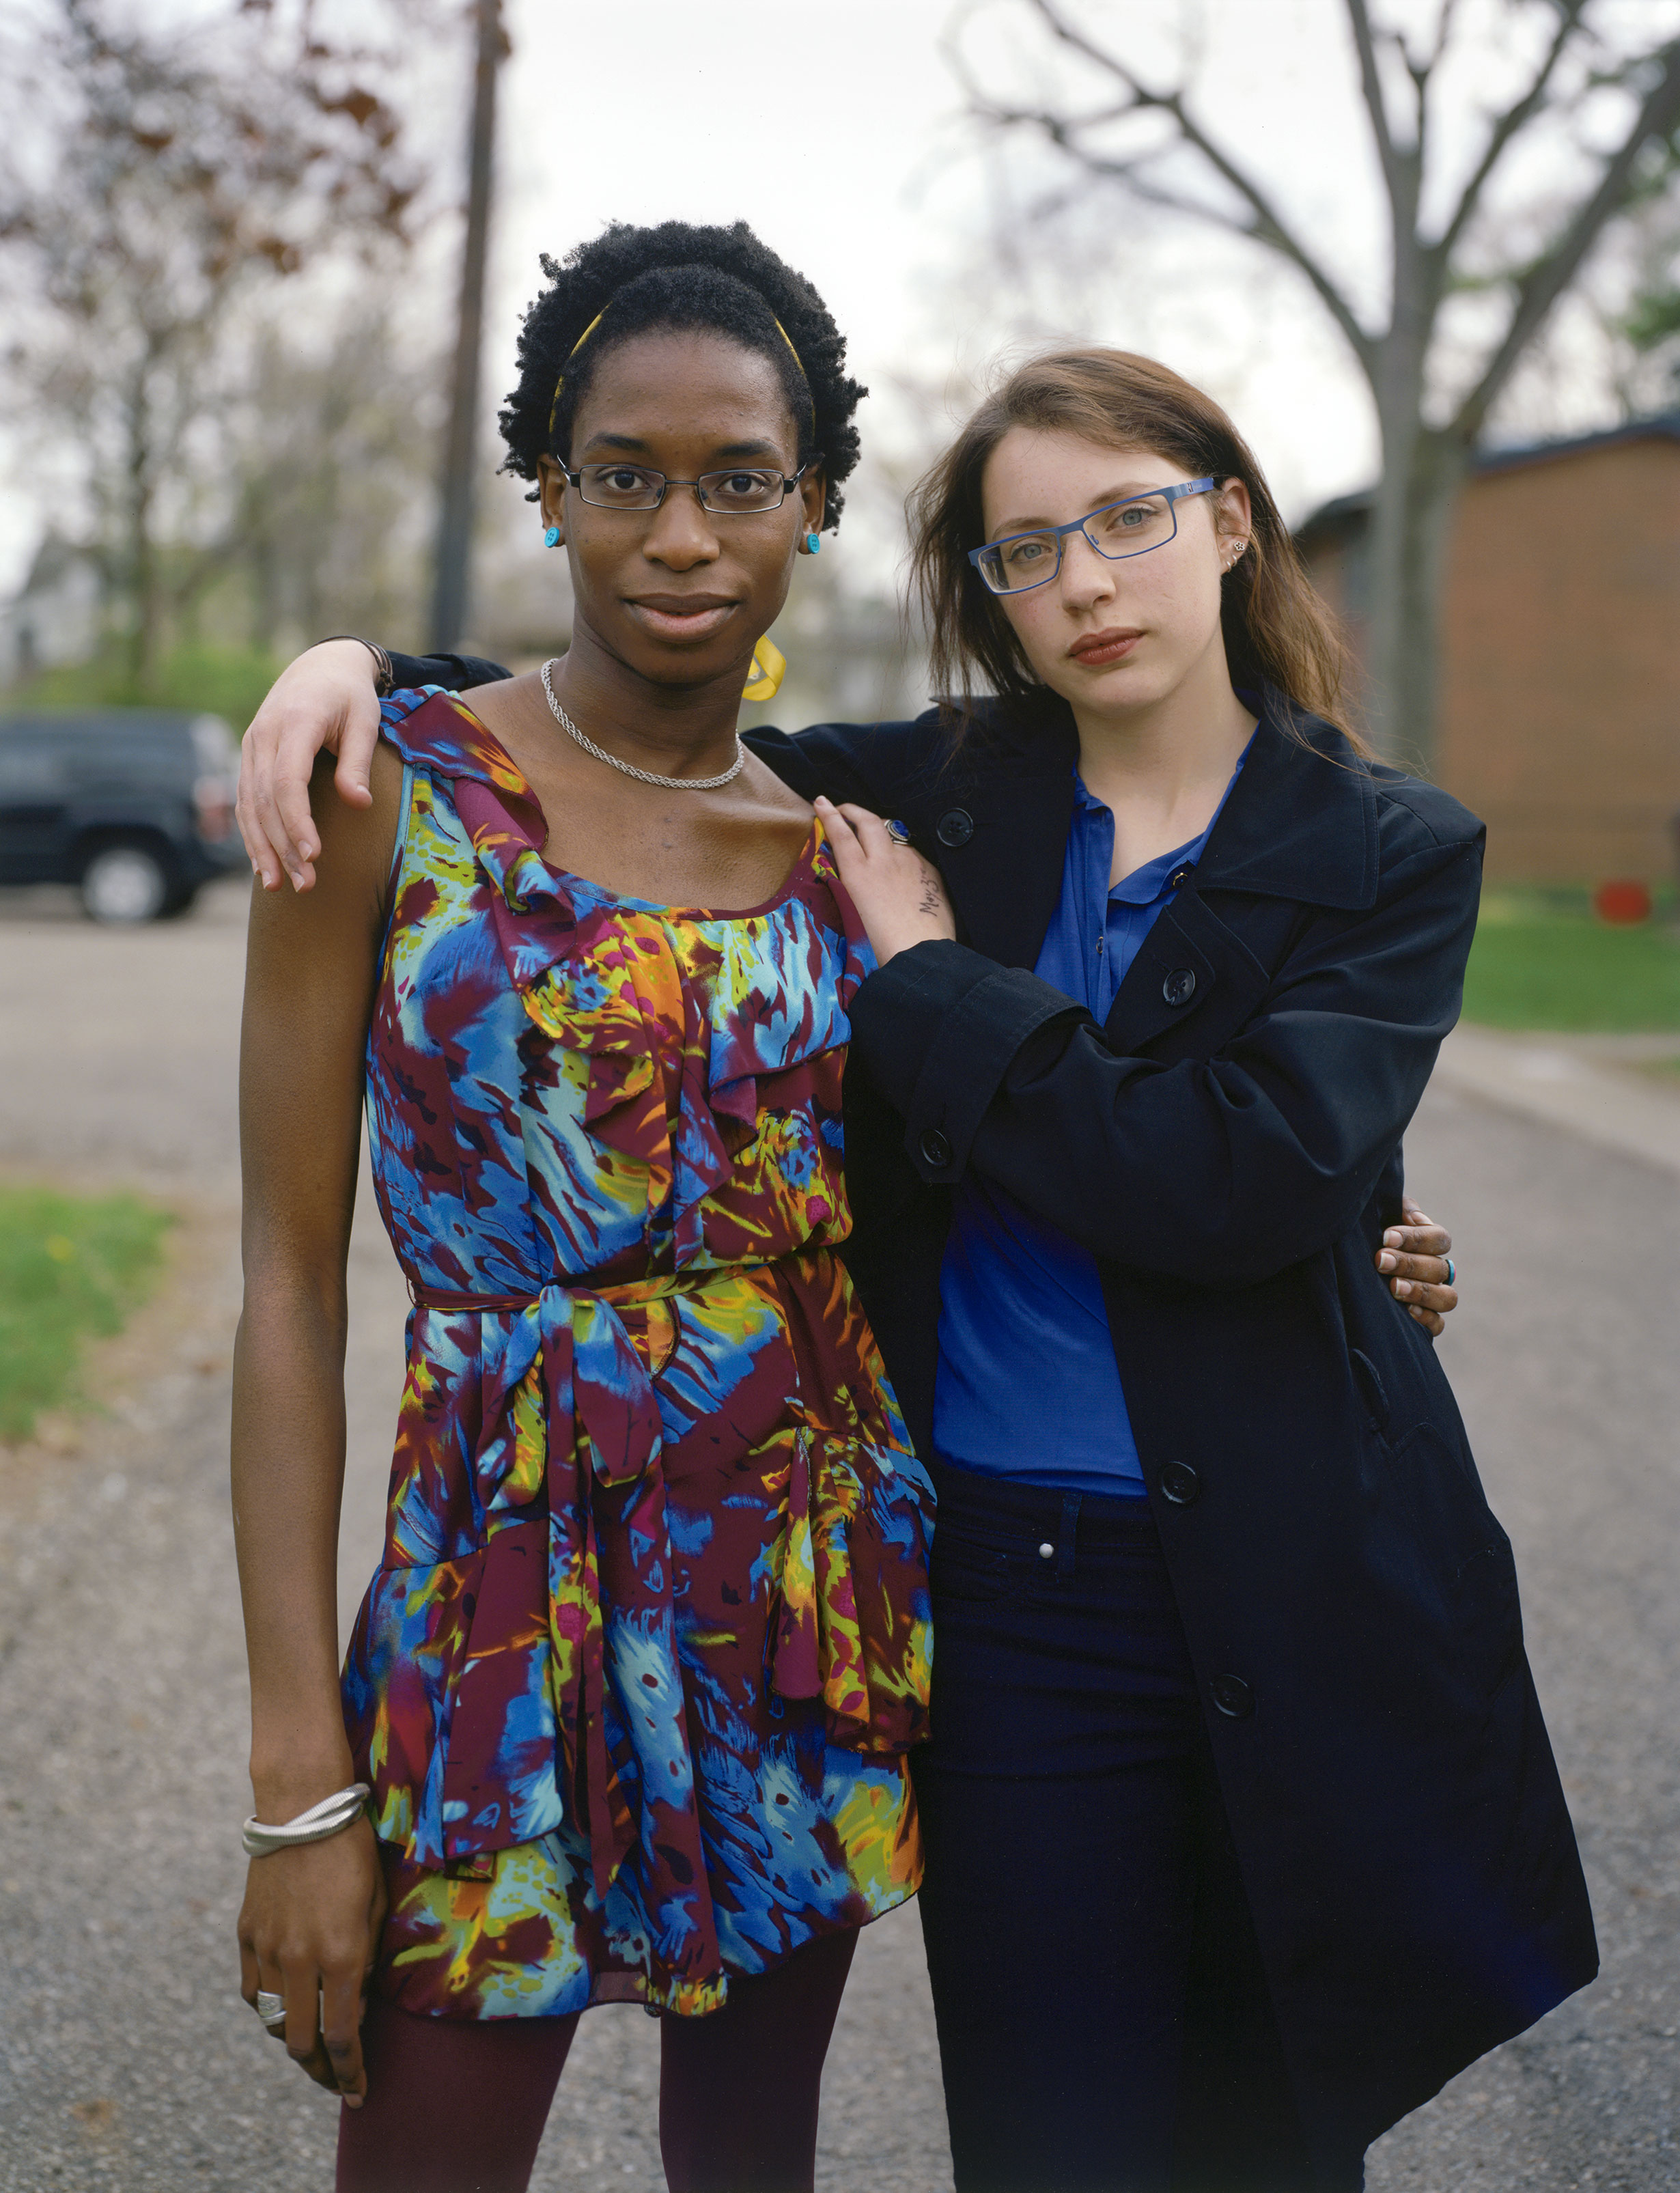 Heidi and Lily, Ohio 2014 by Daniel James McInnis Inkjet print from 8x10 color negative 2014 Collection of the artist © Daniel James McInnis